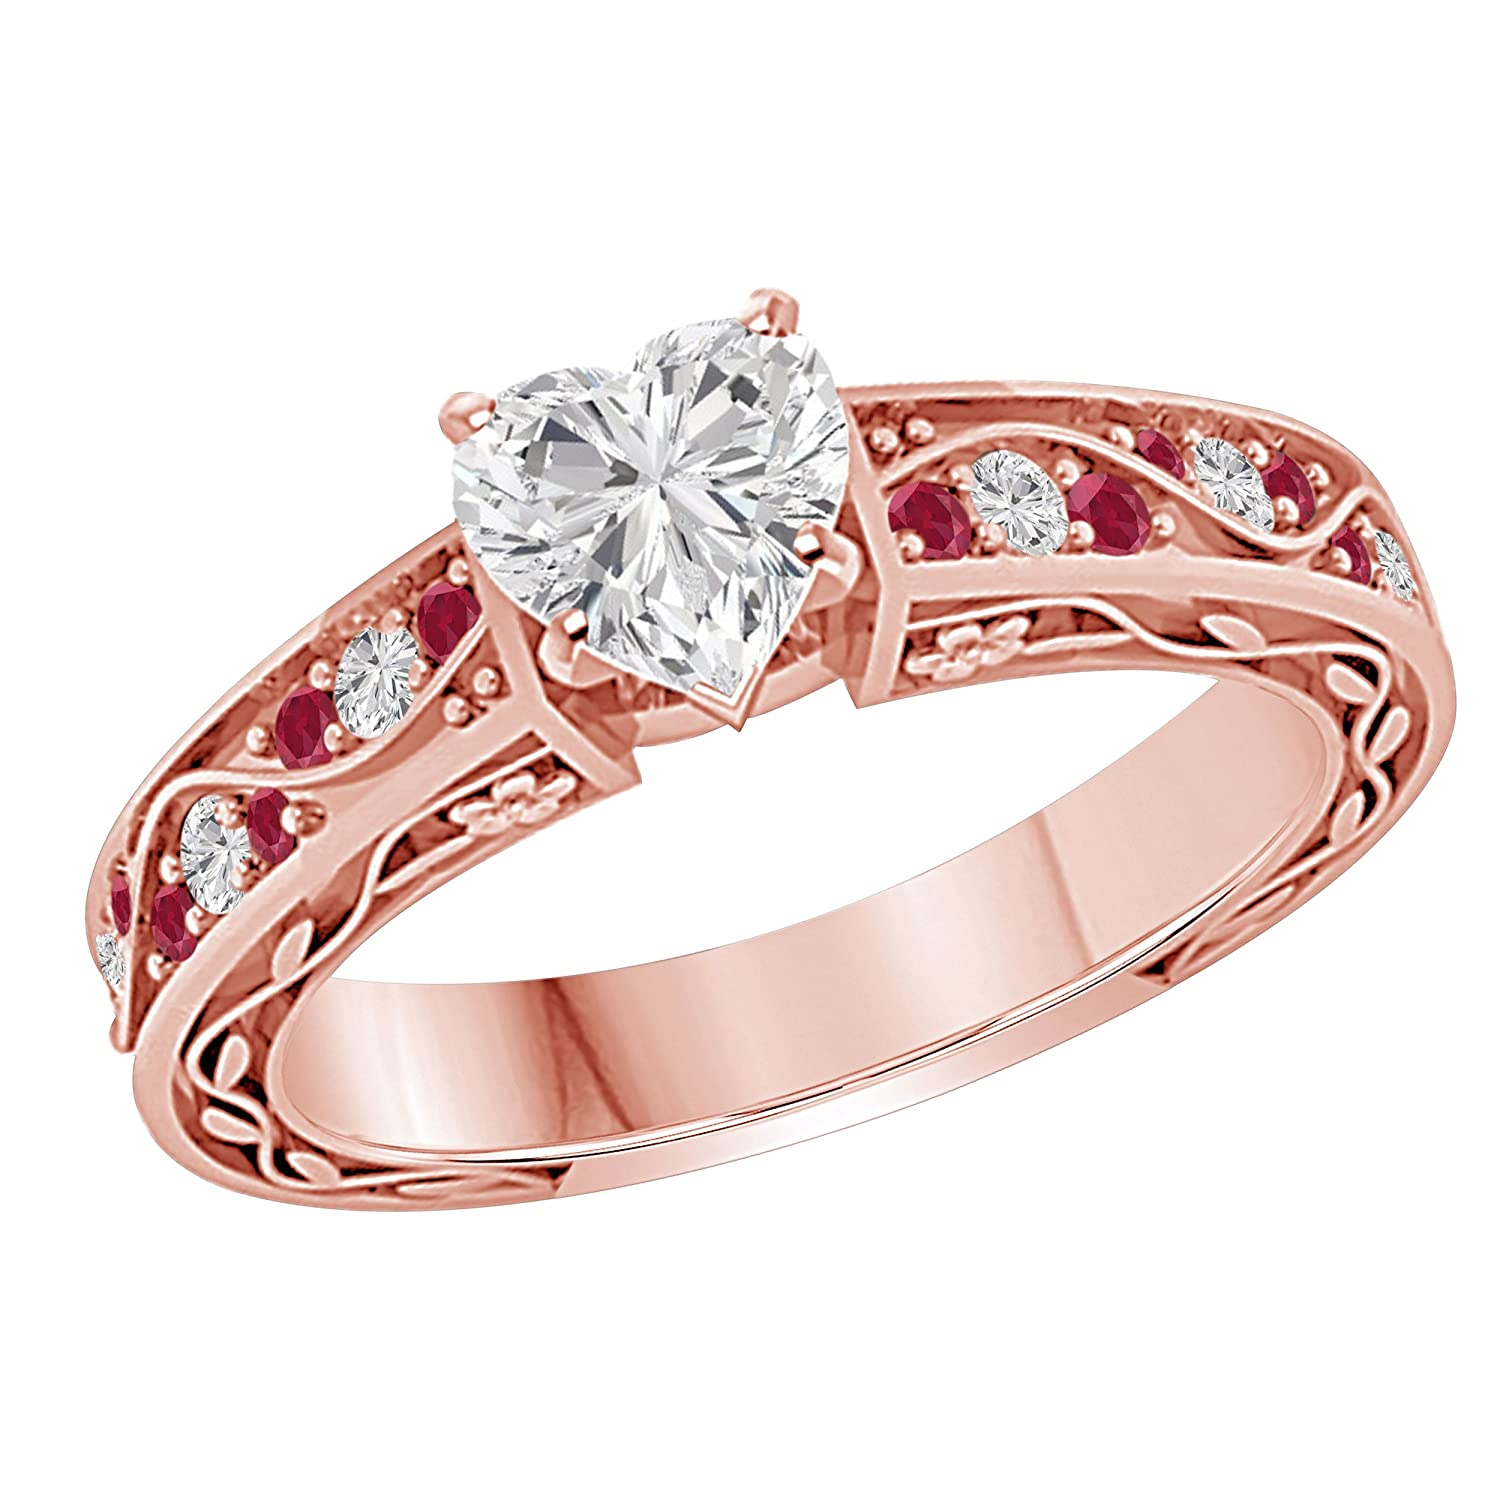 Gems and Jewels Belle Princess 1.00 CT Heart Shape Cubic Zirconia /& CZ Red Ruby 18k Rose Gold Over Promise Engagement Wedding Ring Gift